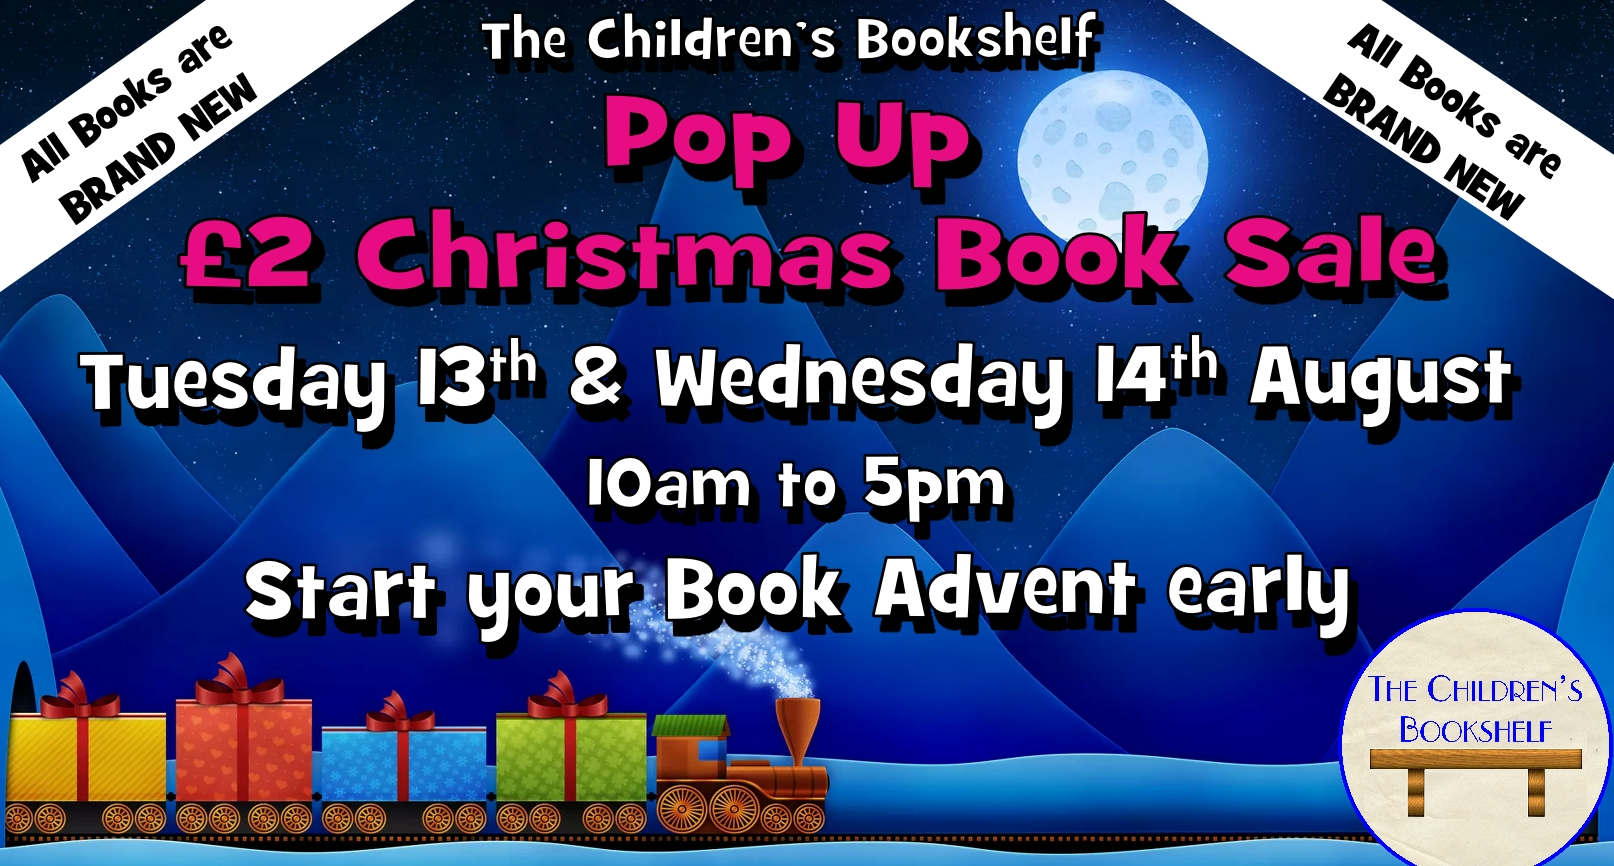 Pop Up £2 Christmas Book Sale